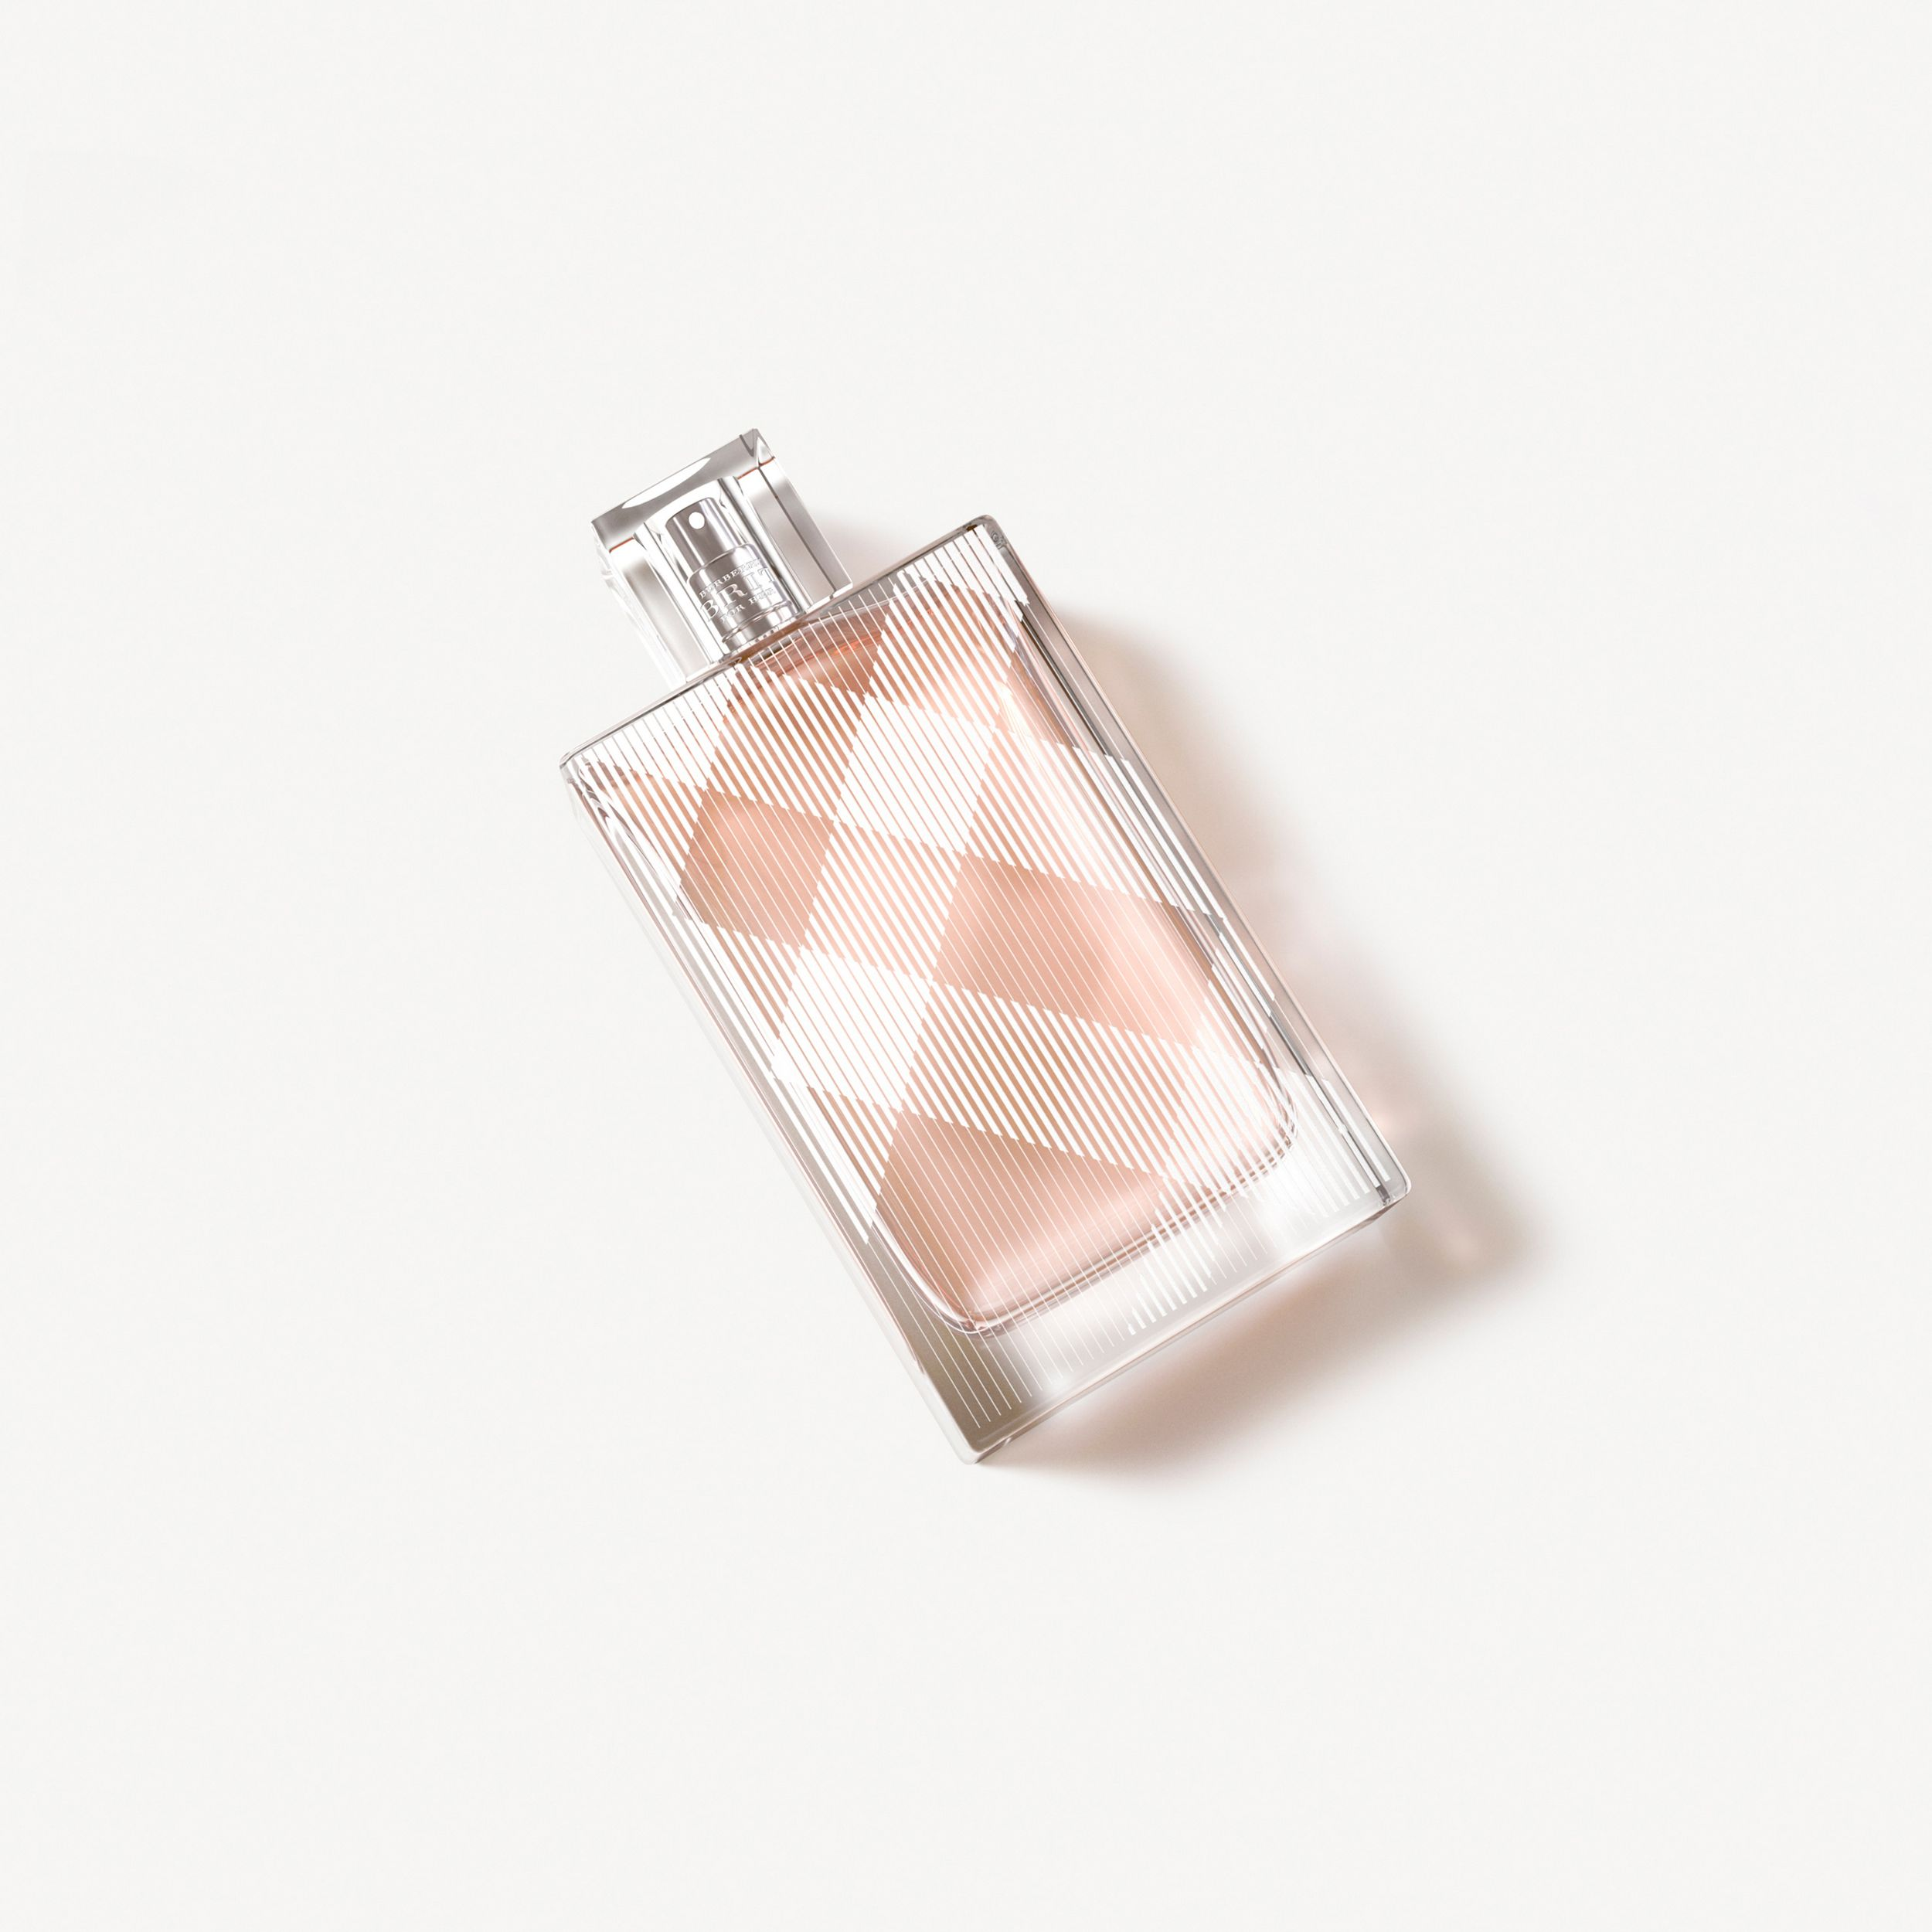 Burberry Brit For Her Eau de Toilette 100ml - Women | Burberry - 1